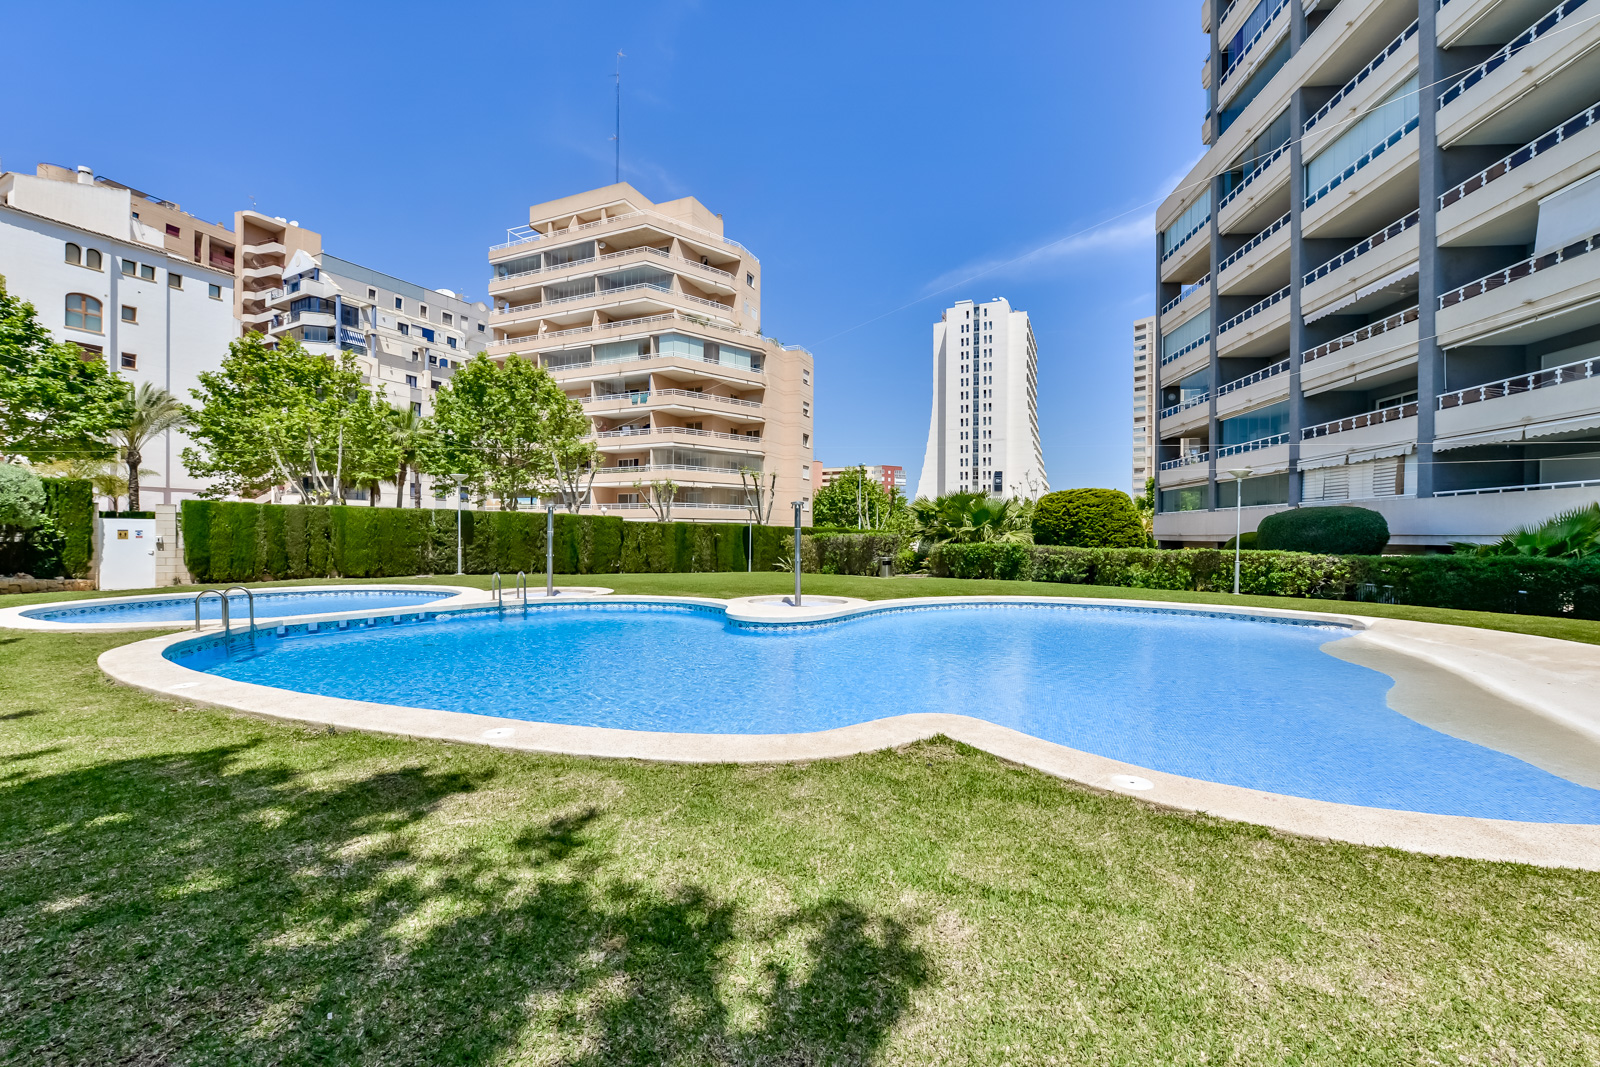 Apartamento Apolo XVIII 57, Apartment in Calpe, on the Costa Blanca, Spain  with communal pool for 6 persons.....